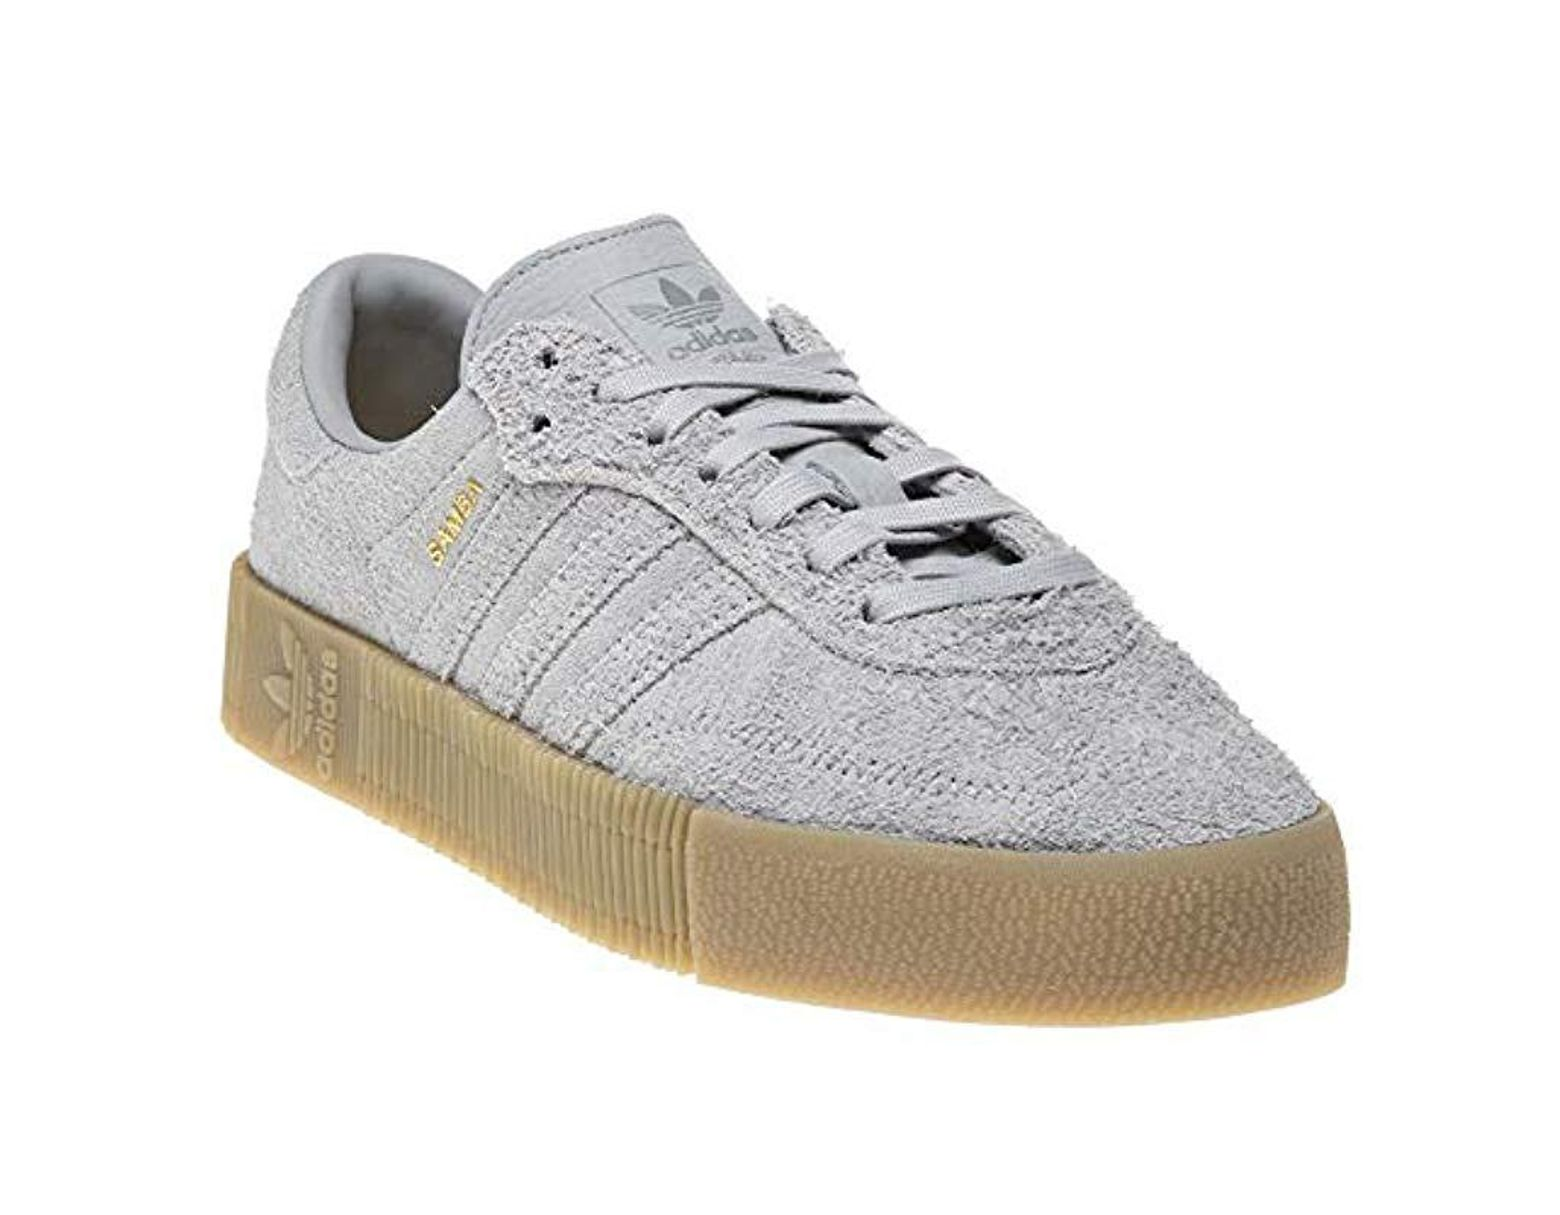 098784fee47f7 adidas Sambarose W Fitness Shoes in Gray - Lyst